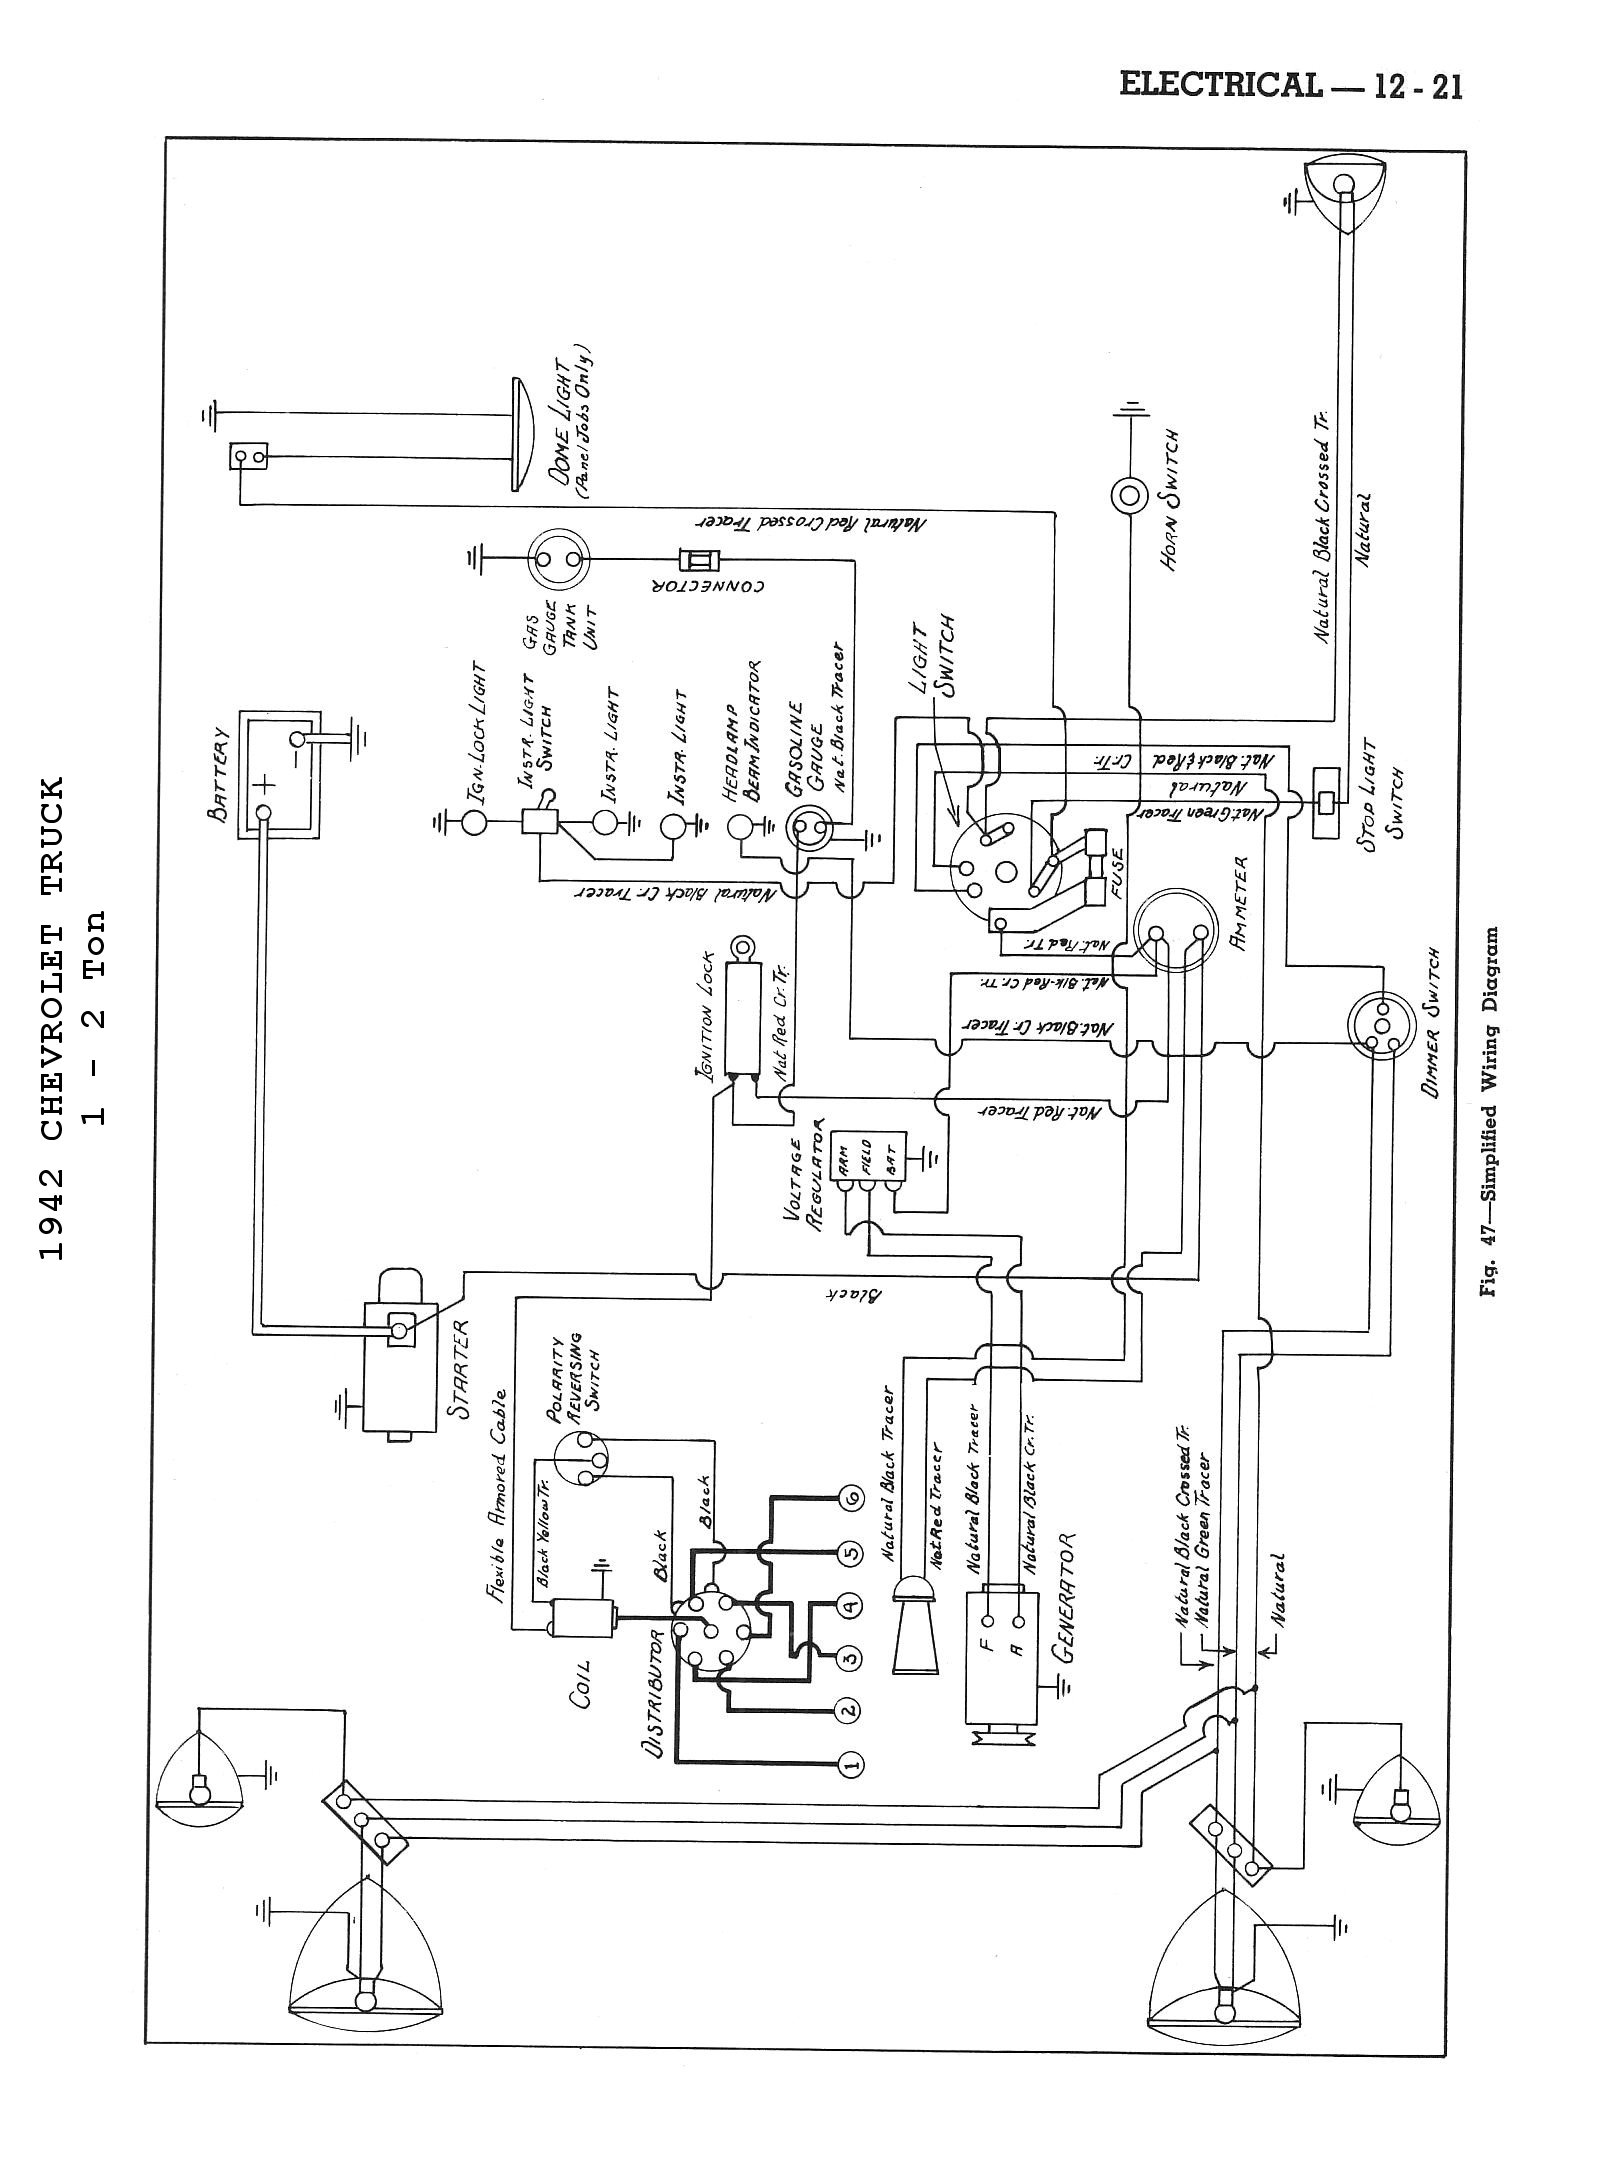 42cm4x2t1221 chevy wiring diagrams simple chevy tbi wiring harness diagram at virtualis.co